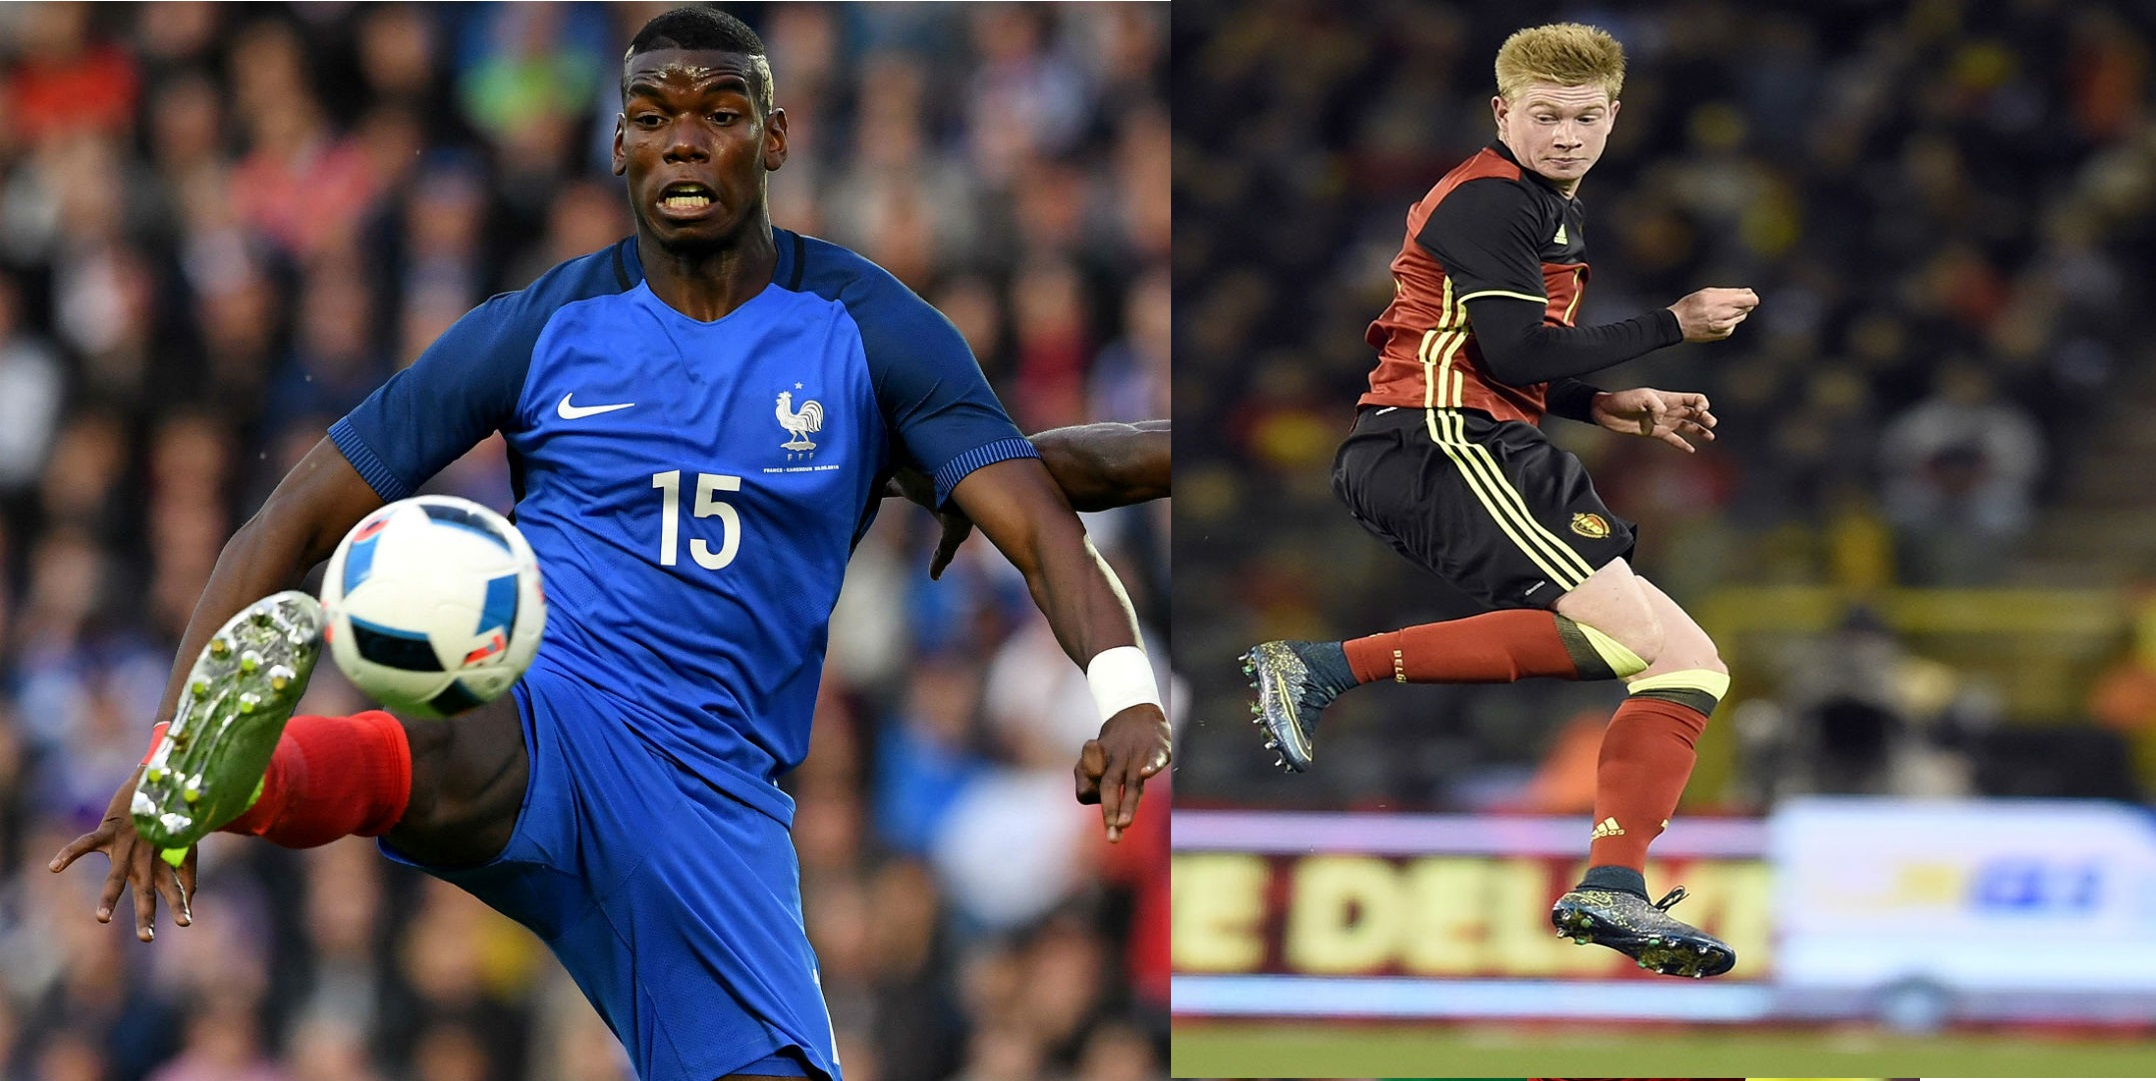 List of Top Best Midfielders at UEFA EURO 2016 Pogba, De Bruyne